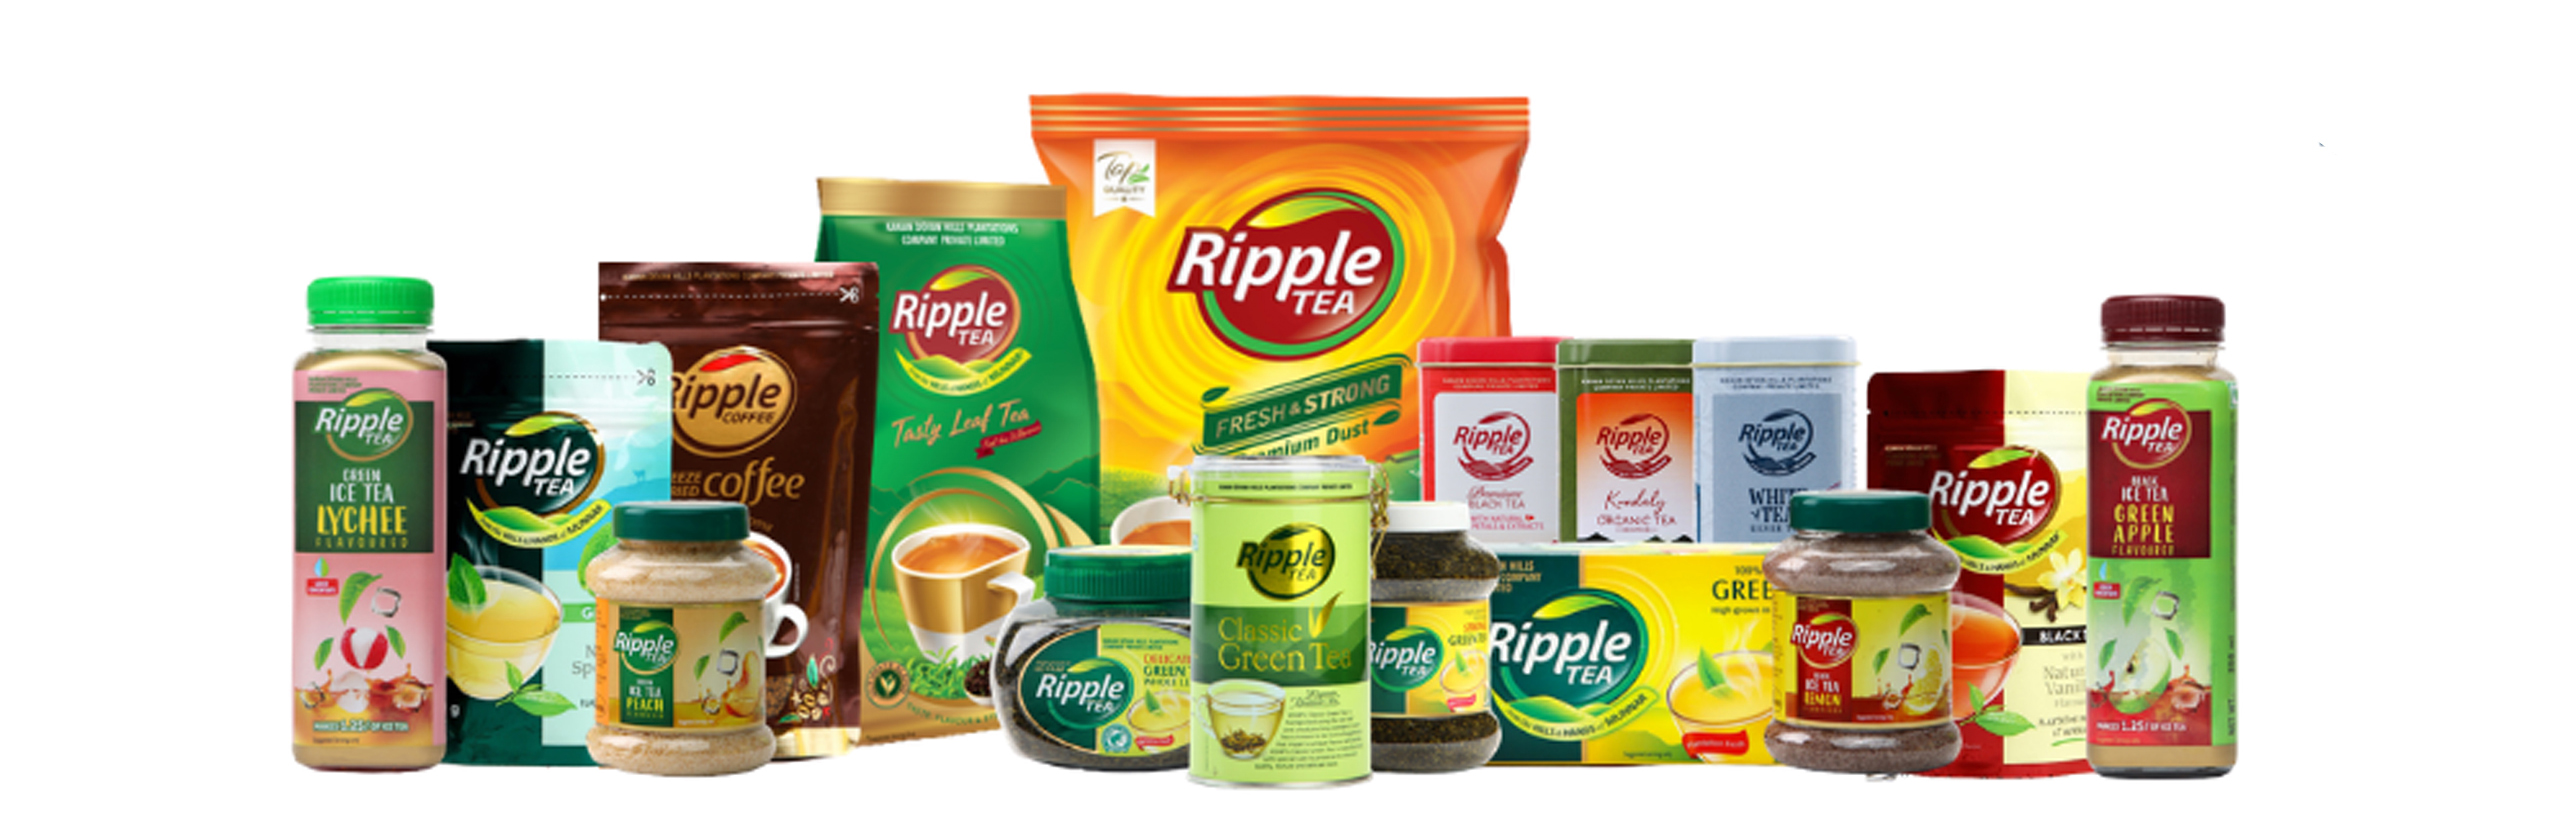 Ripple tea products